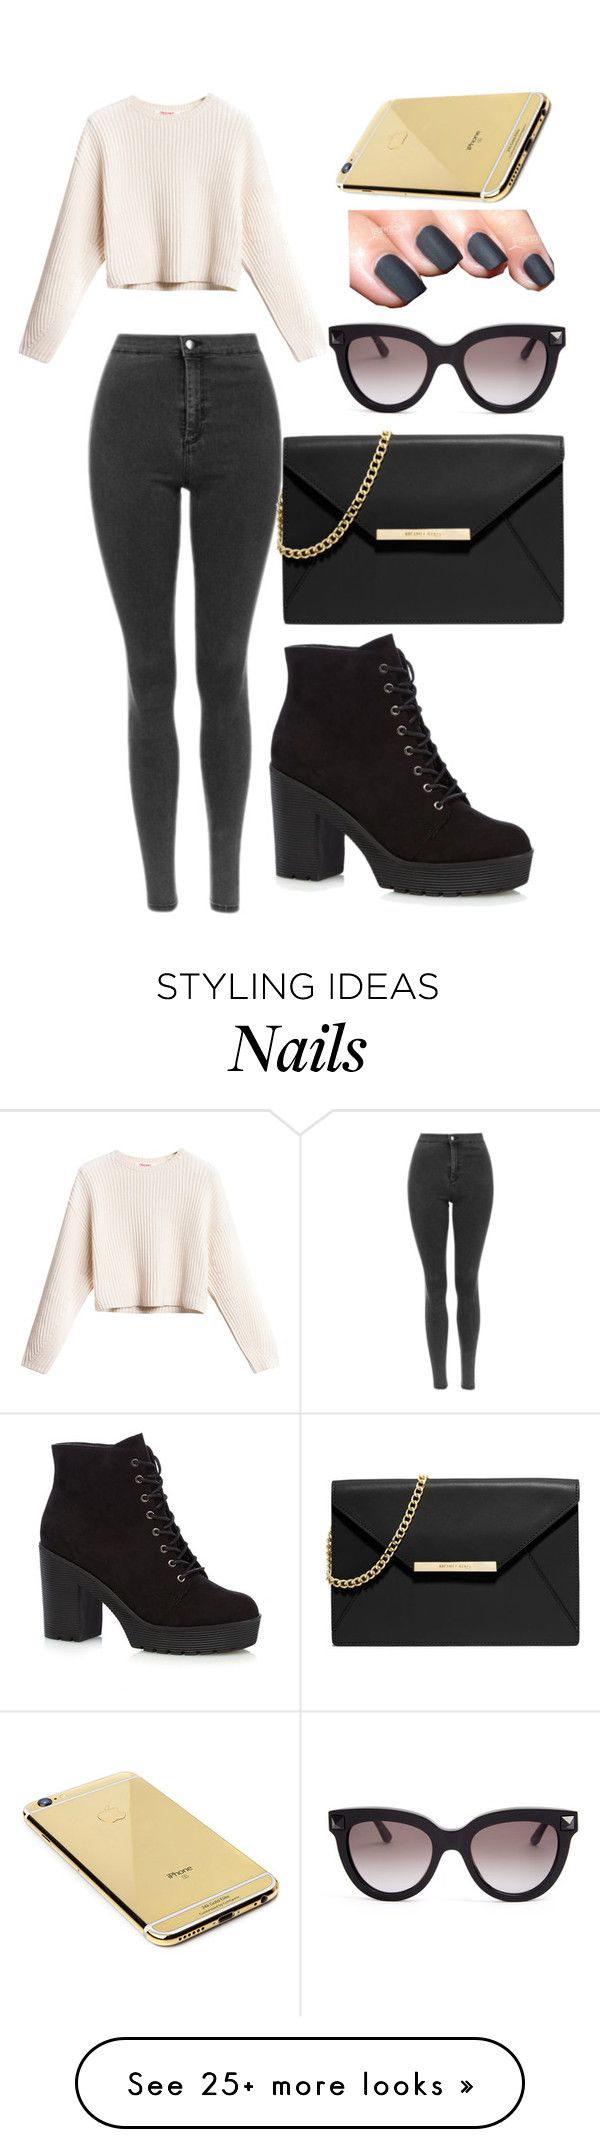 """Untitled #196"" by xxcupcakesxx on Polyvore featuring MICHAEL Michael Kors, Valentino and Goldgenie"